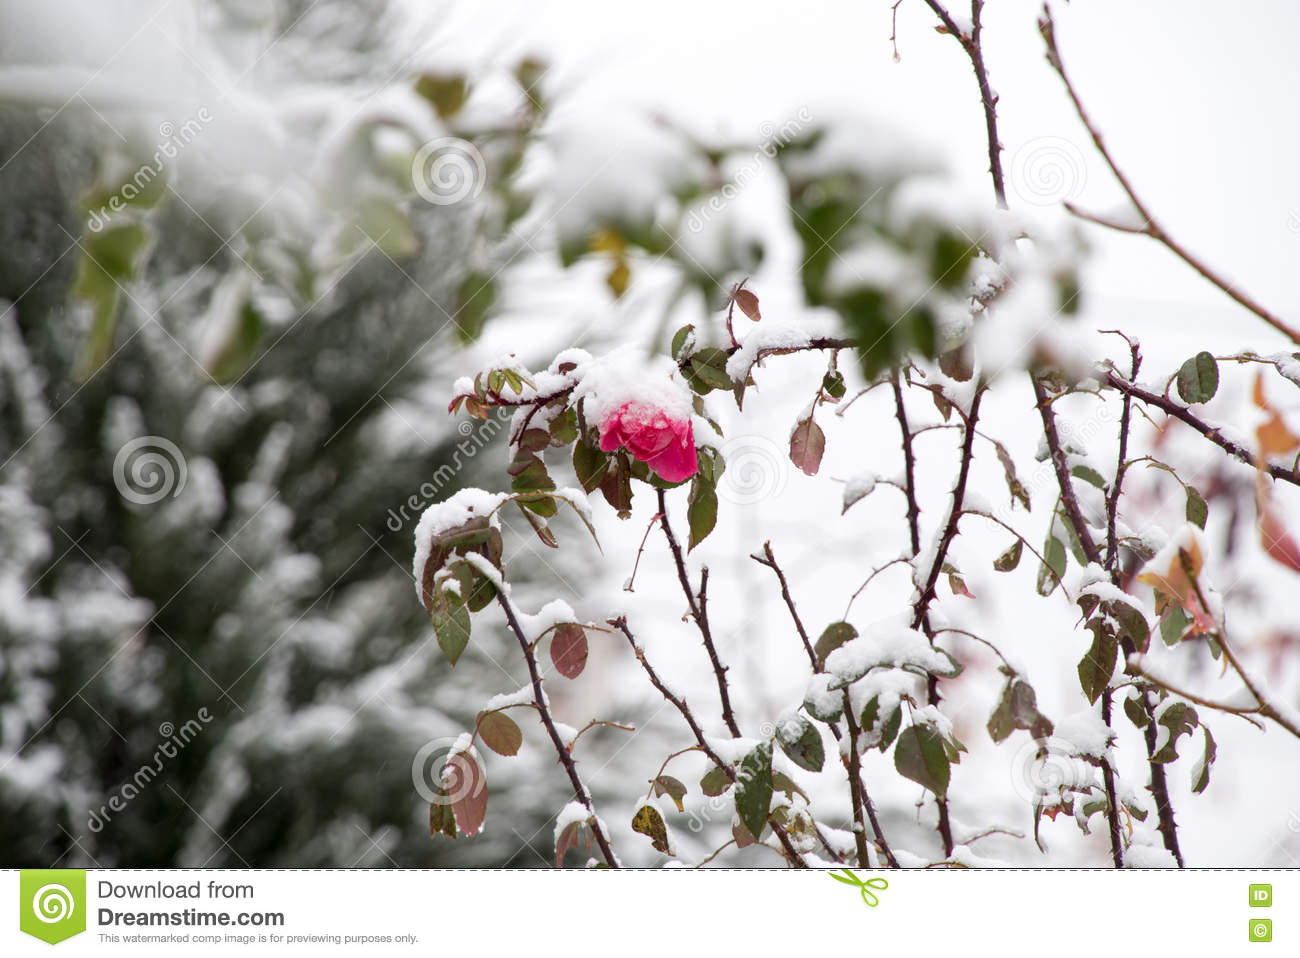 flowers in the winter garden stock photo image 81602679